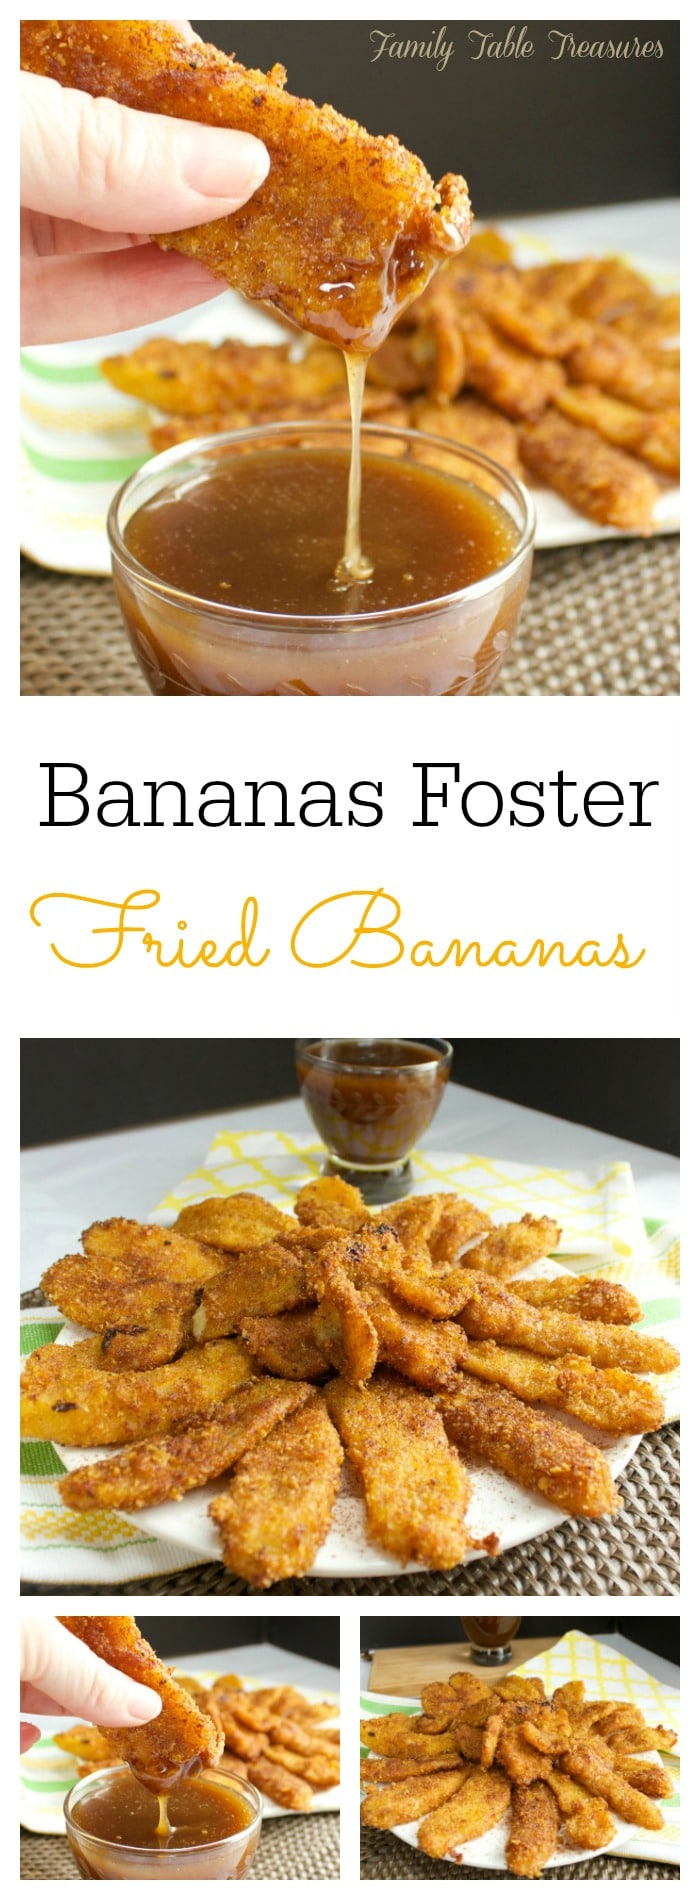 {Bananas Foster} Fried Bananas